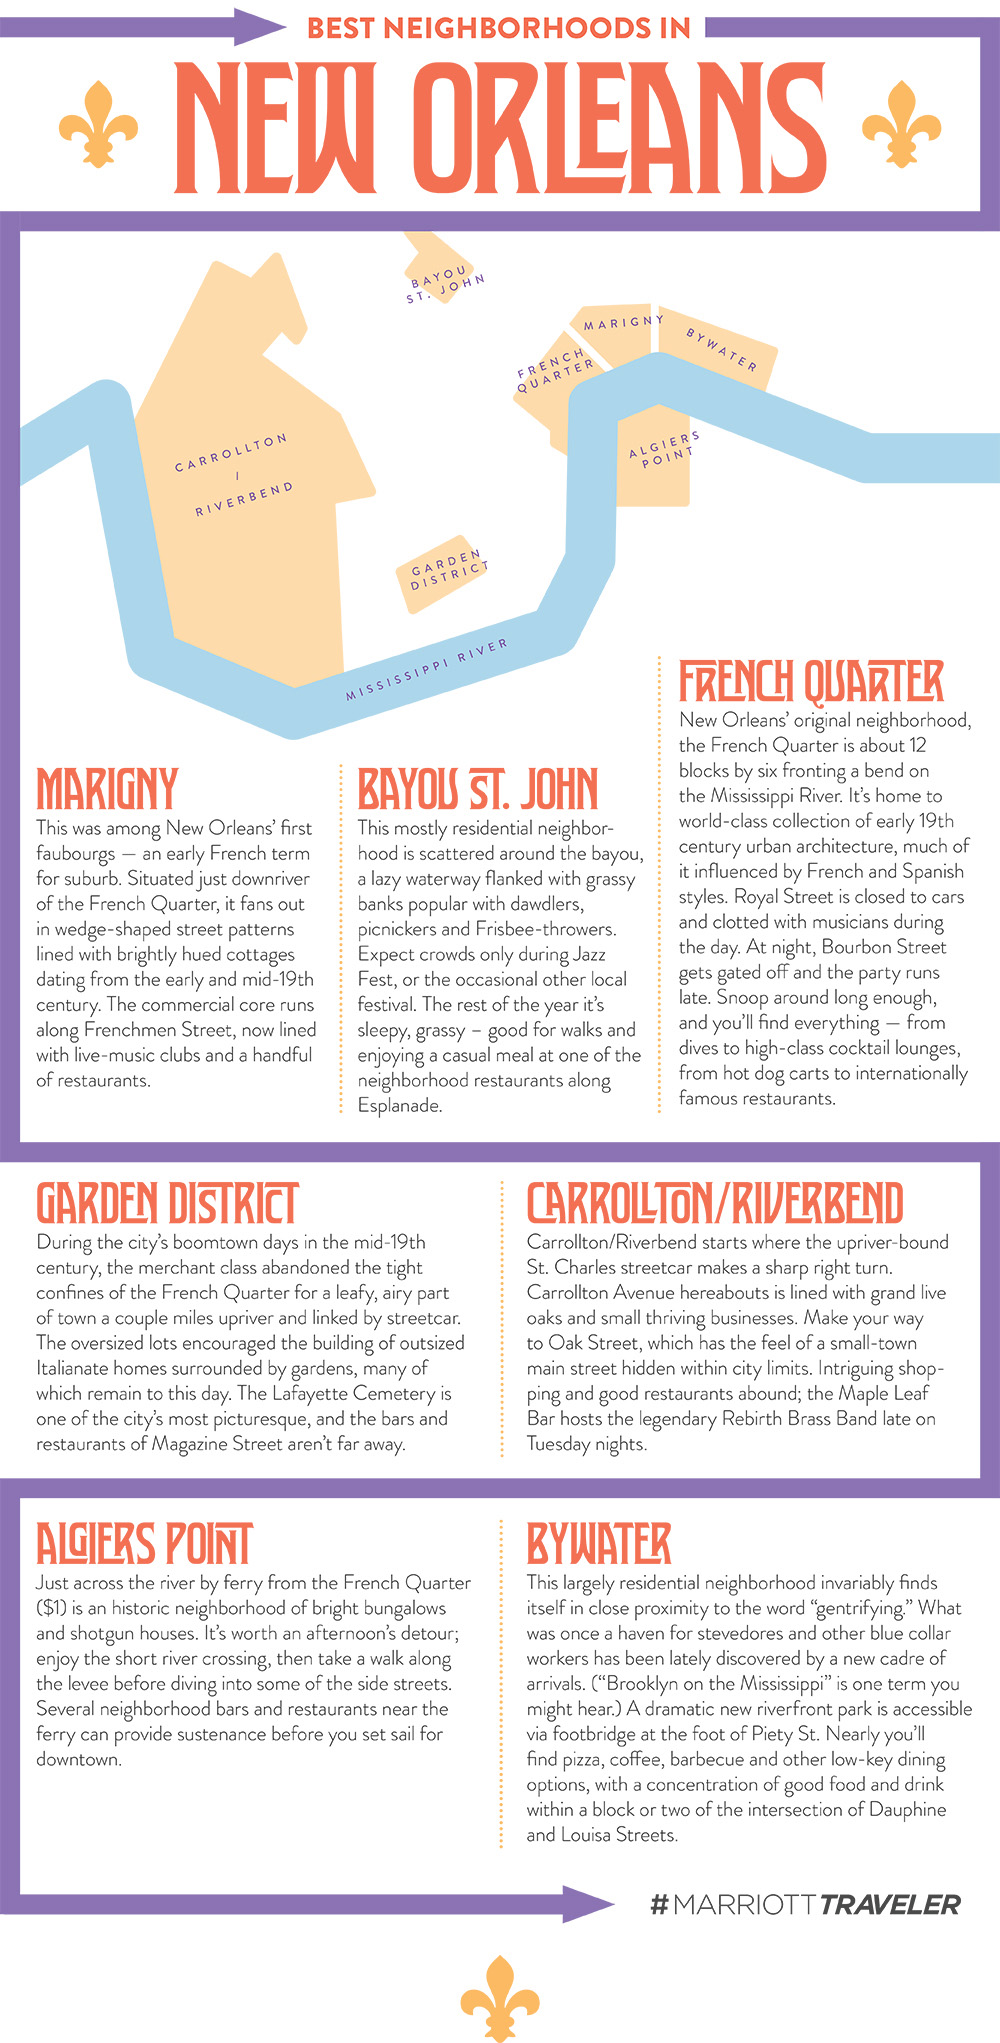 best-neighborhoods-new-orleans-infographic-main.jpg